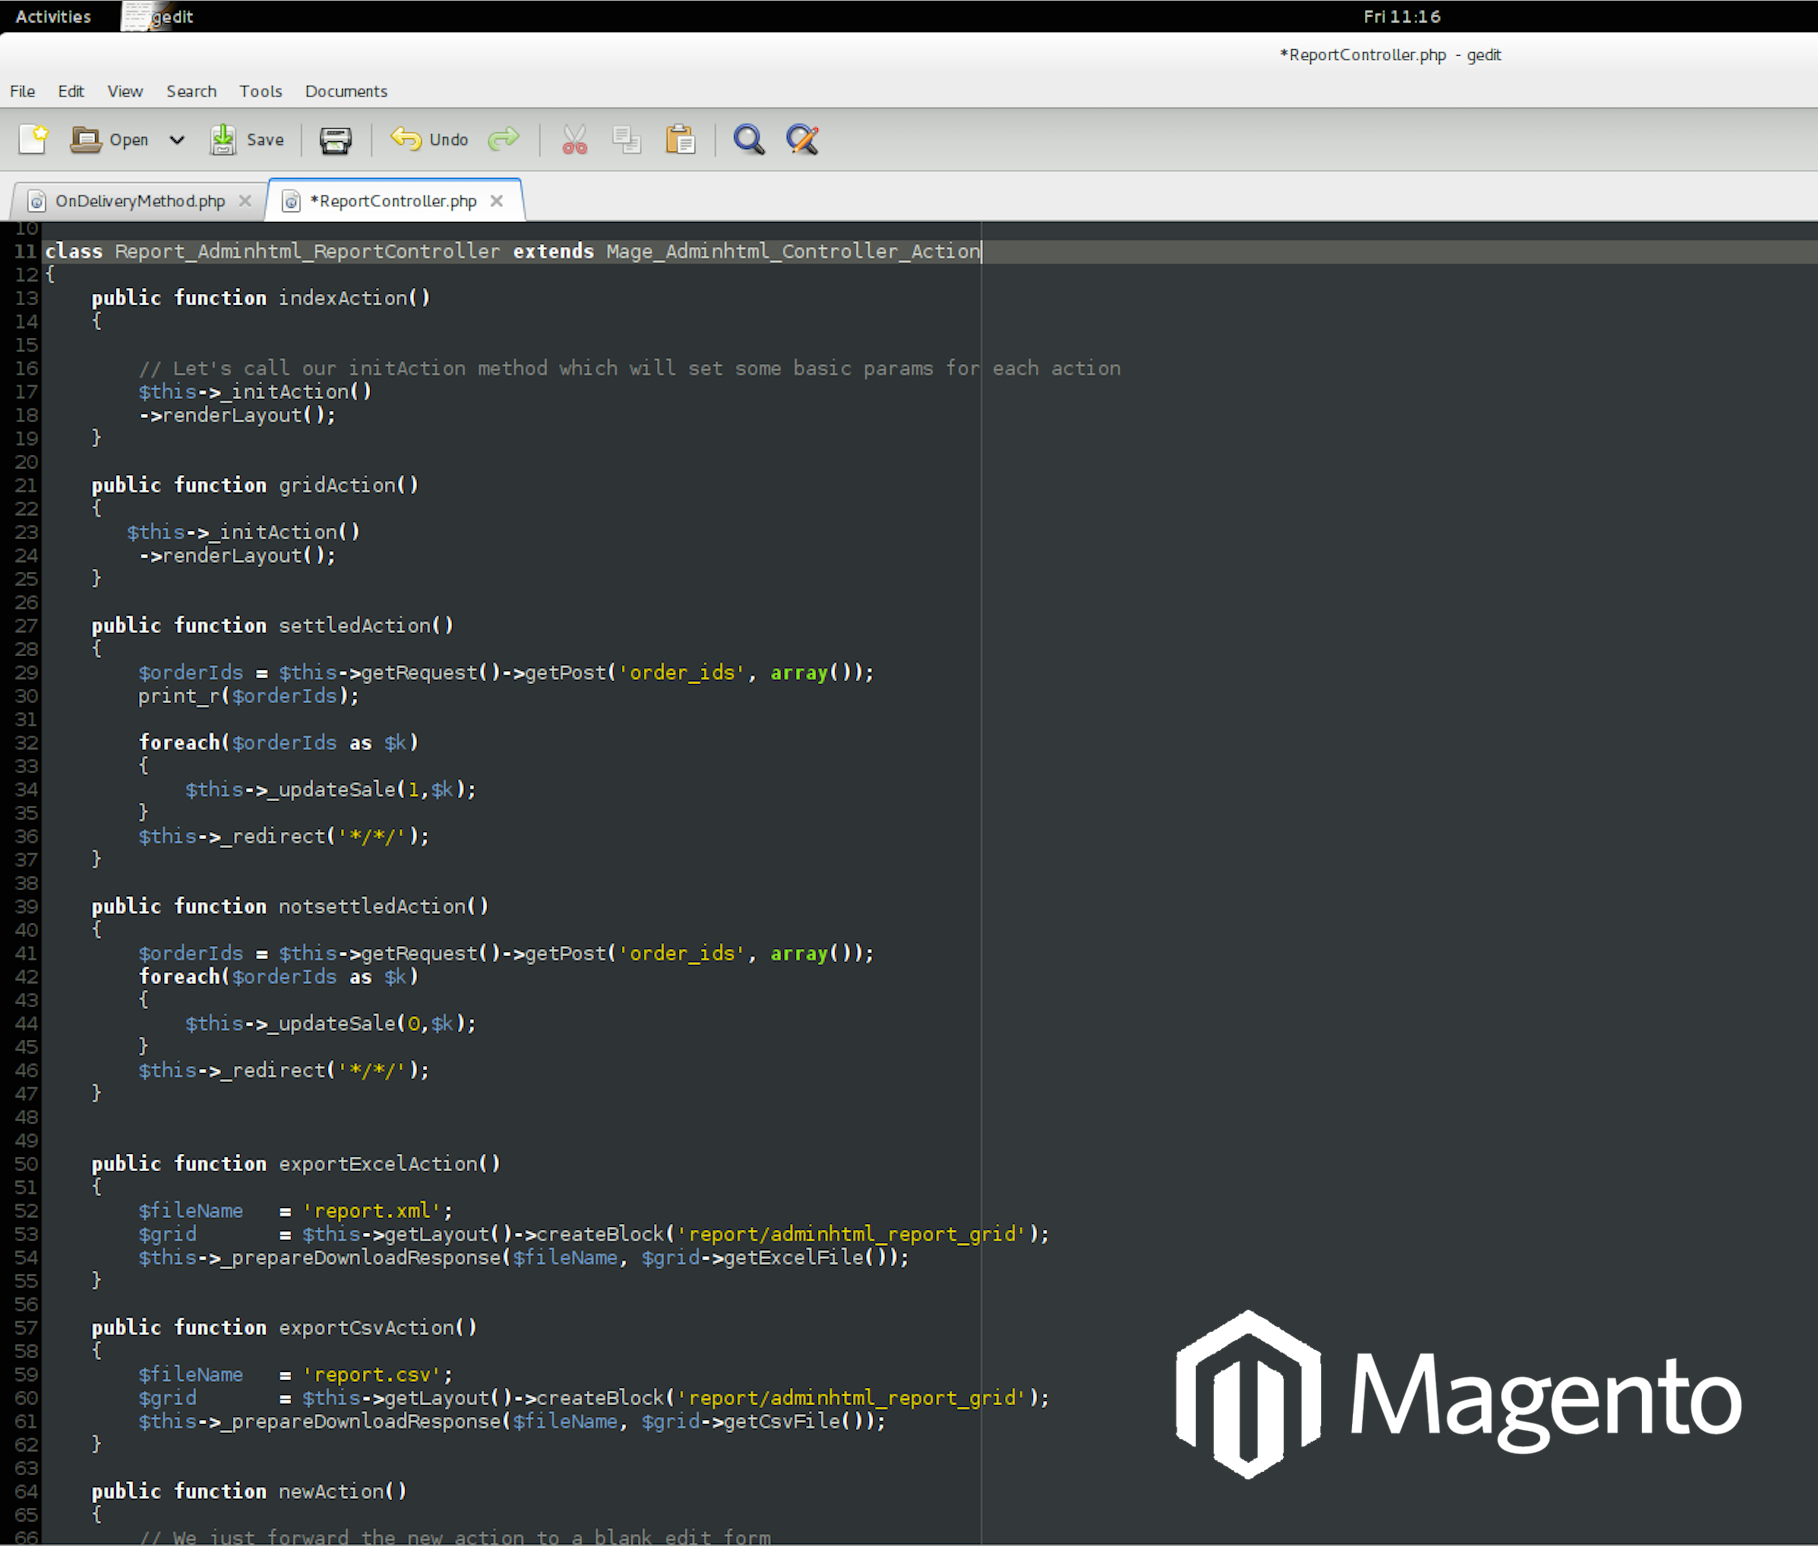 The Magento E-Commerce System